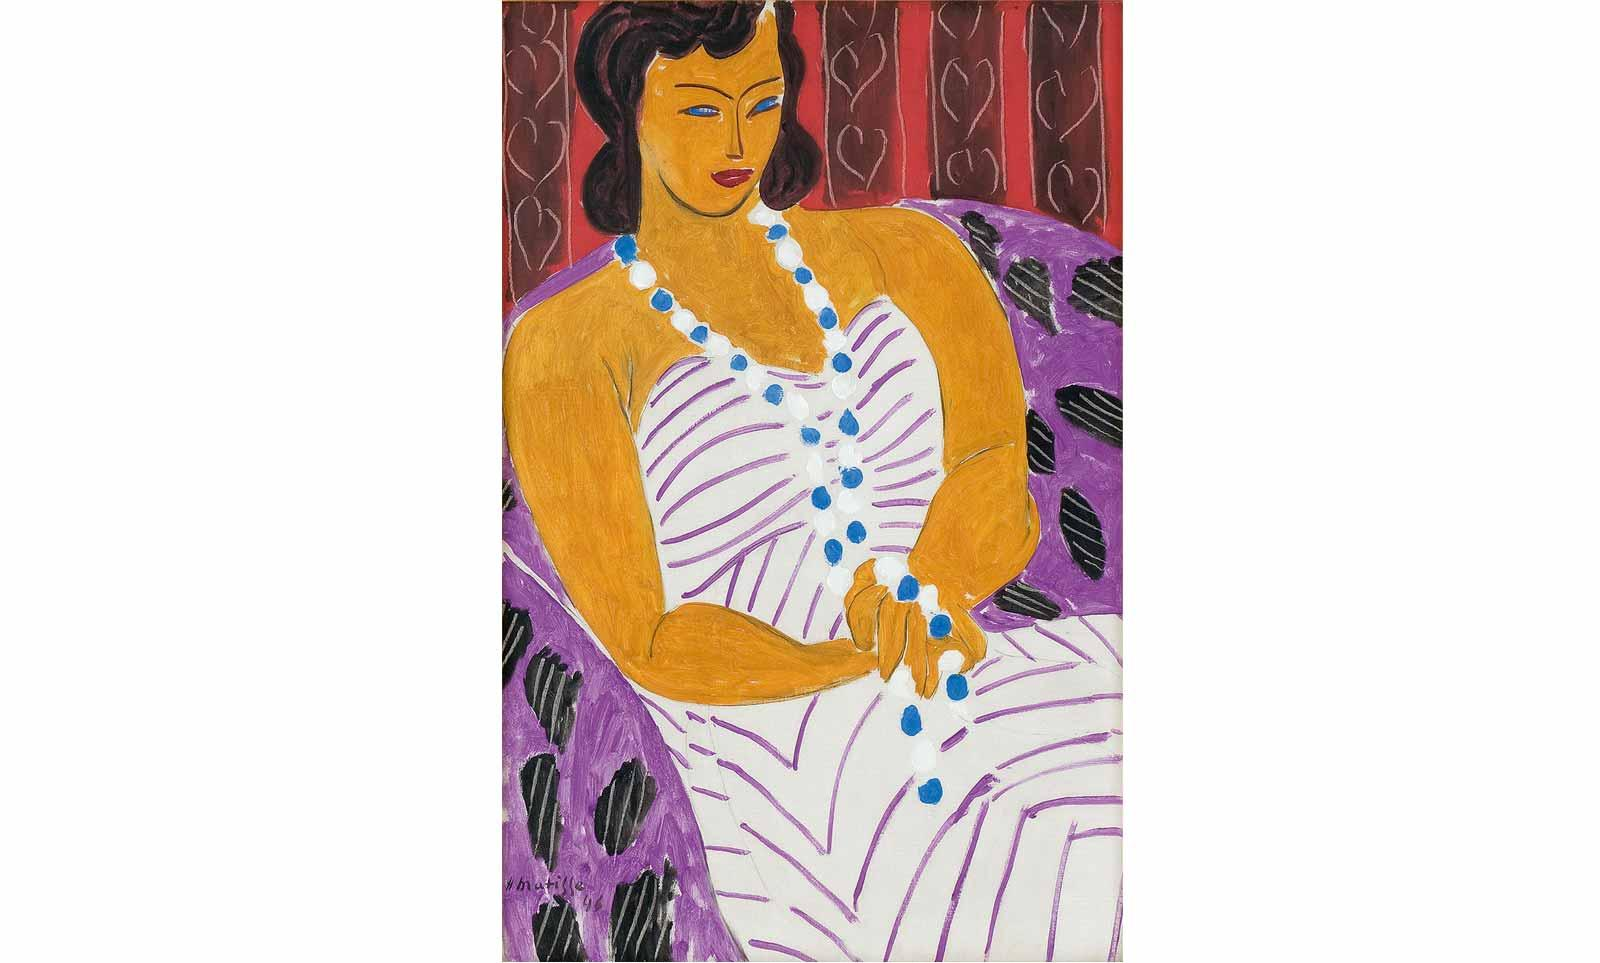 Henri Matisse (1869-1954), Lady with white dress (woman in white), 1946